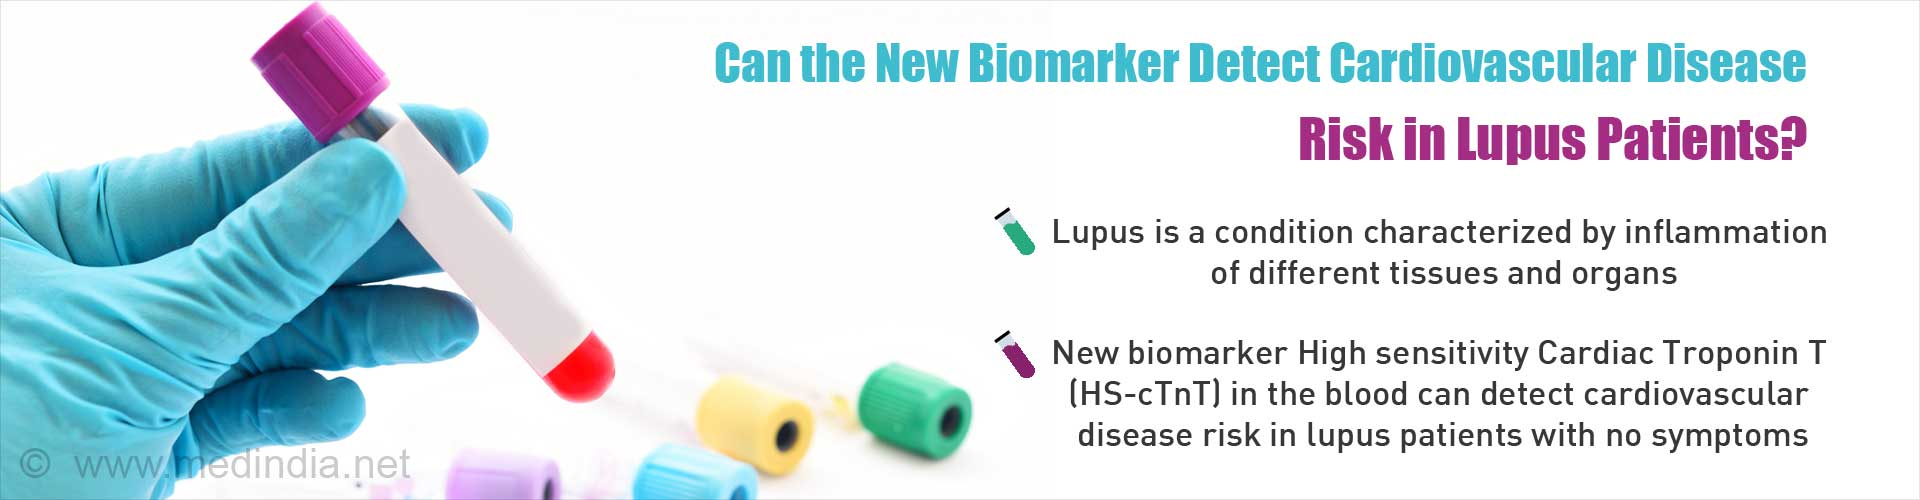 Can the new biomarker detect cardiovascular disease risk in lupus patients?